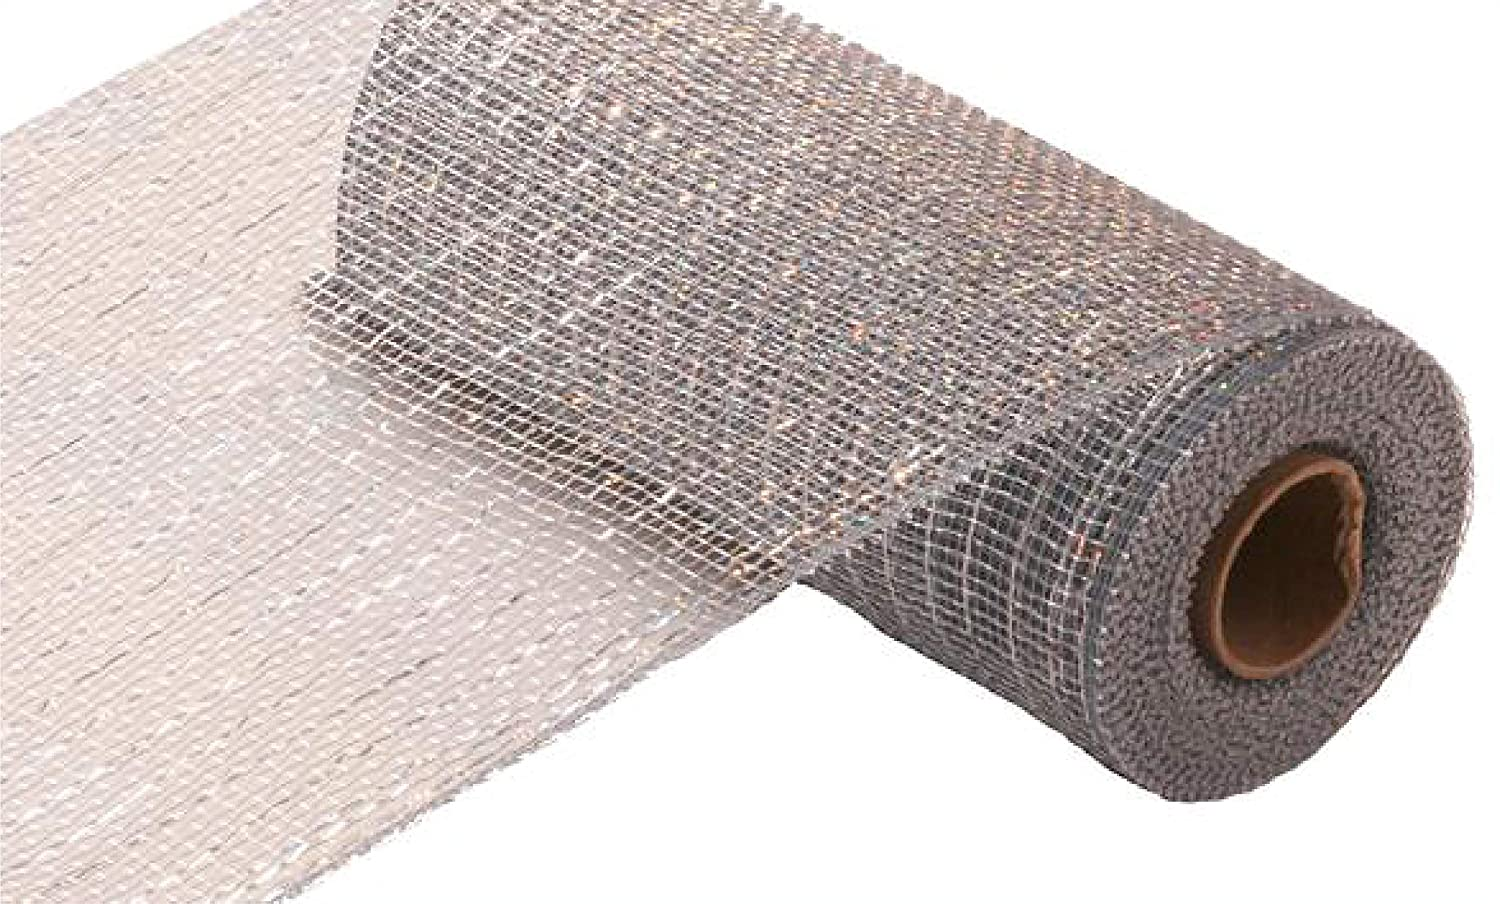 10 inch x 30 feet Deco Poly Mesh Ribbon RE1301E2 Metallic Chocolate Brown and Copper